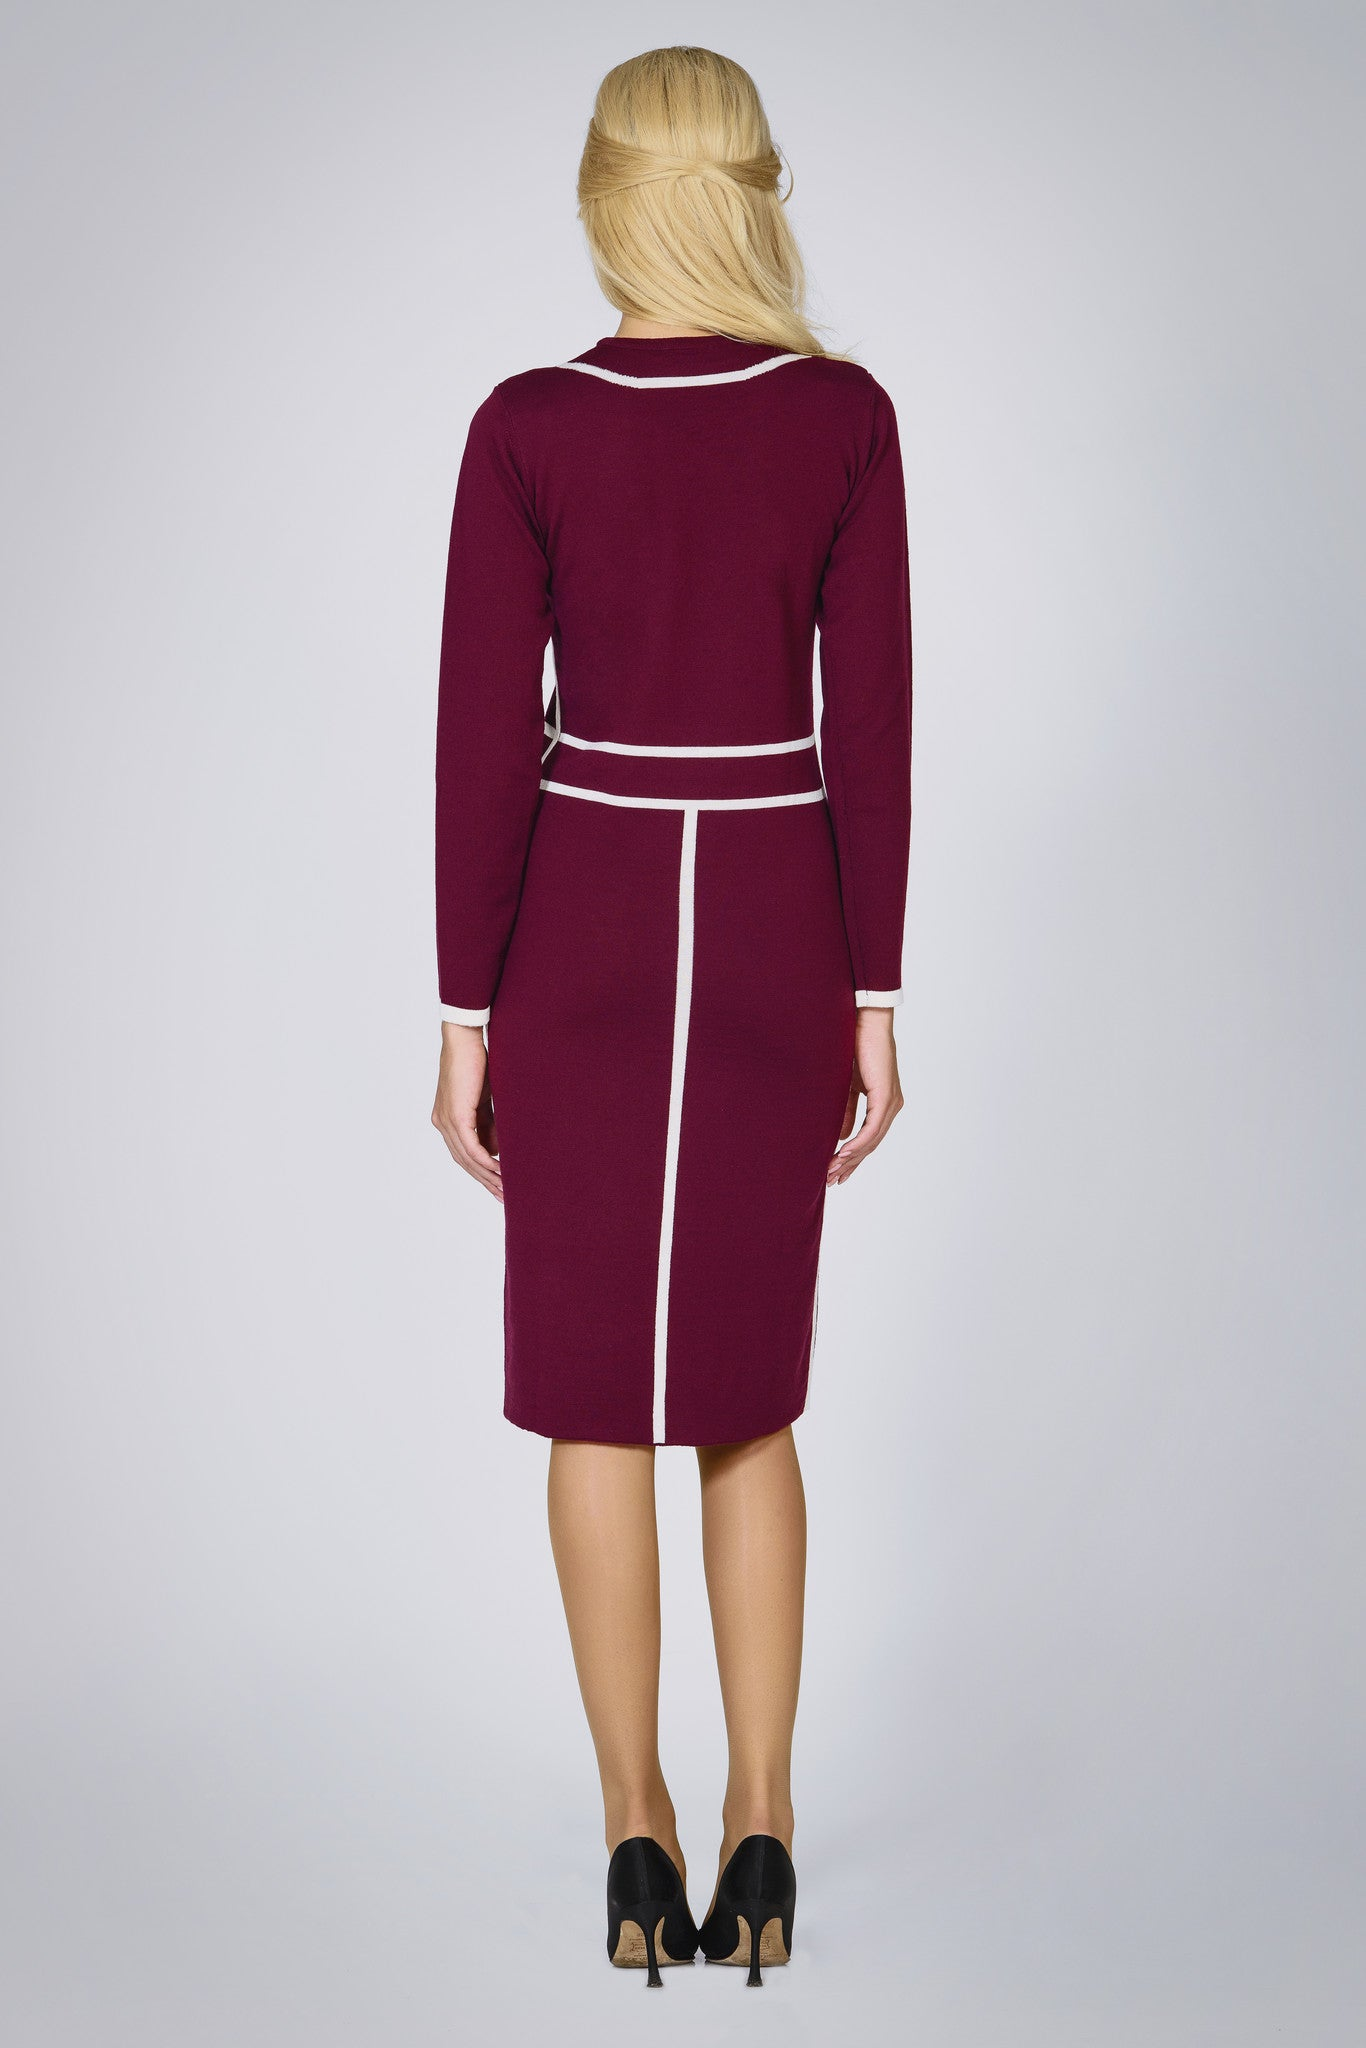 Knitted Jacquard Dress in Mulberry